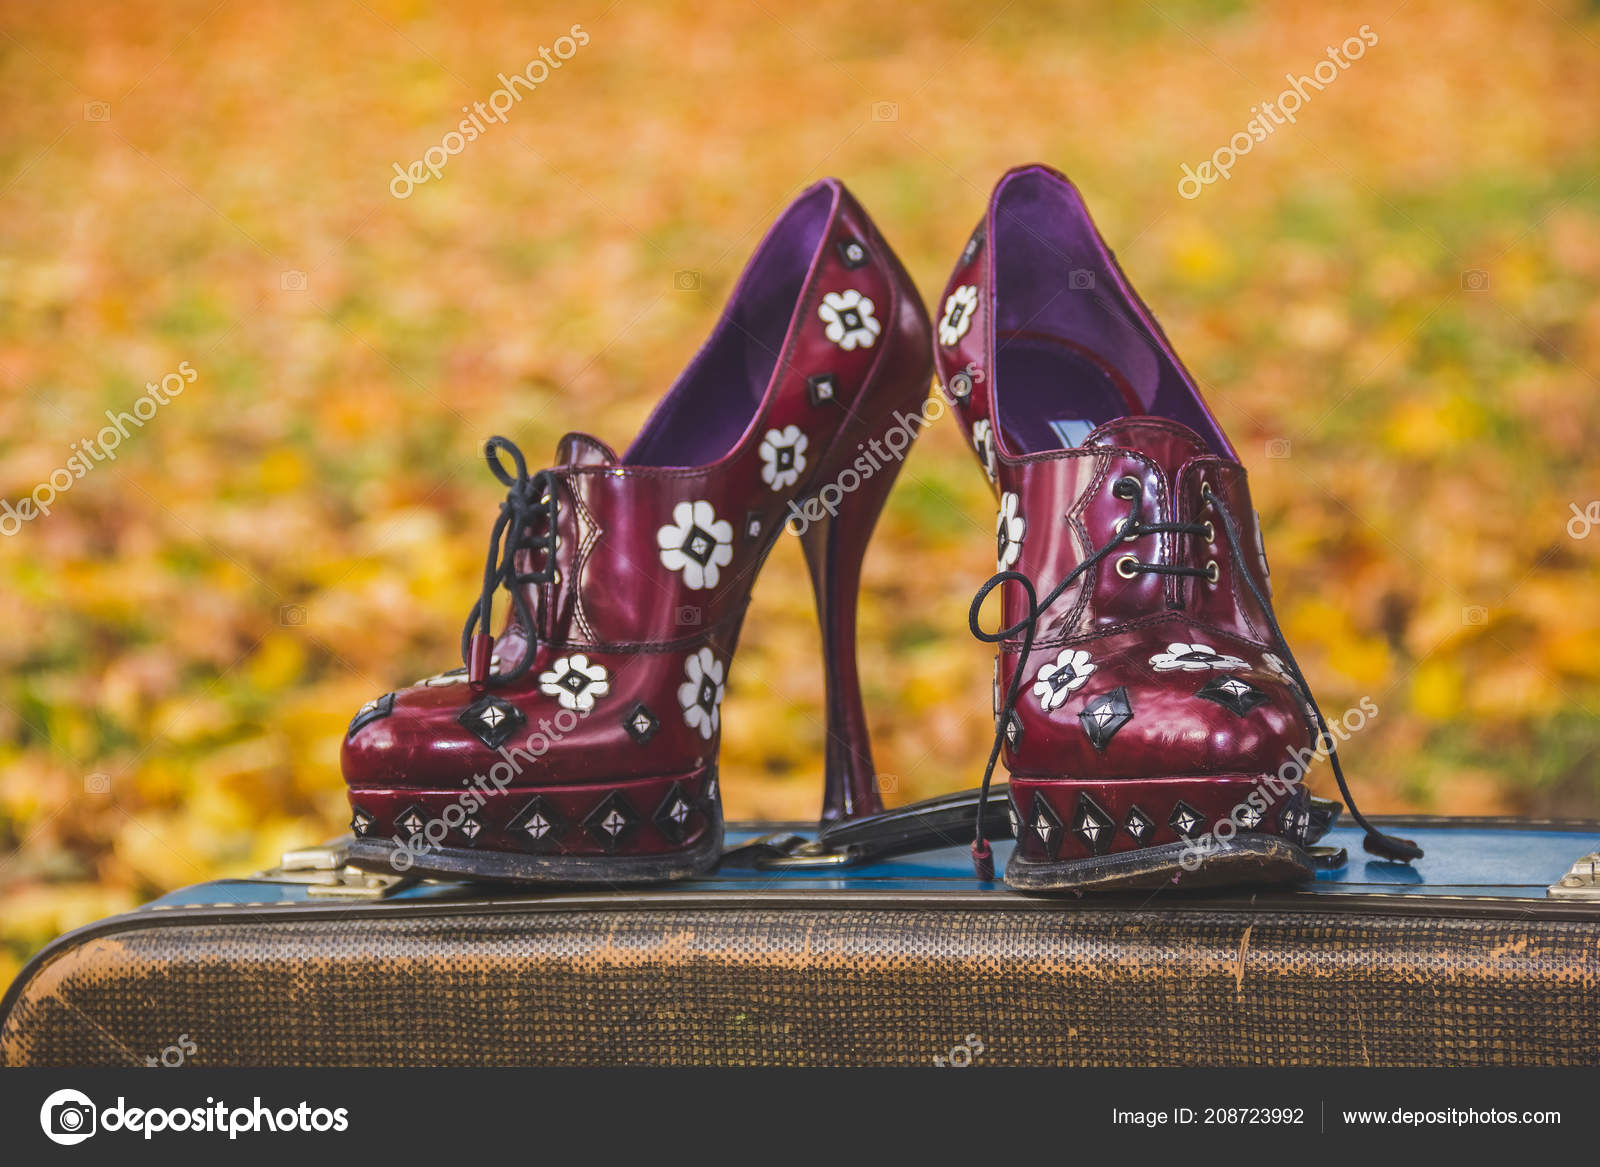 6b1231cd57dee Sexy female stiletto shoes isolated on fall blurred background.high ...